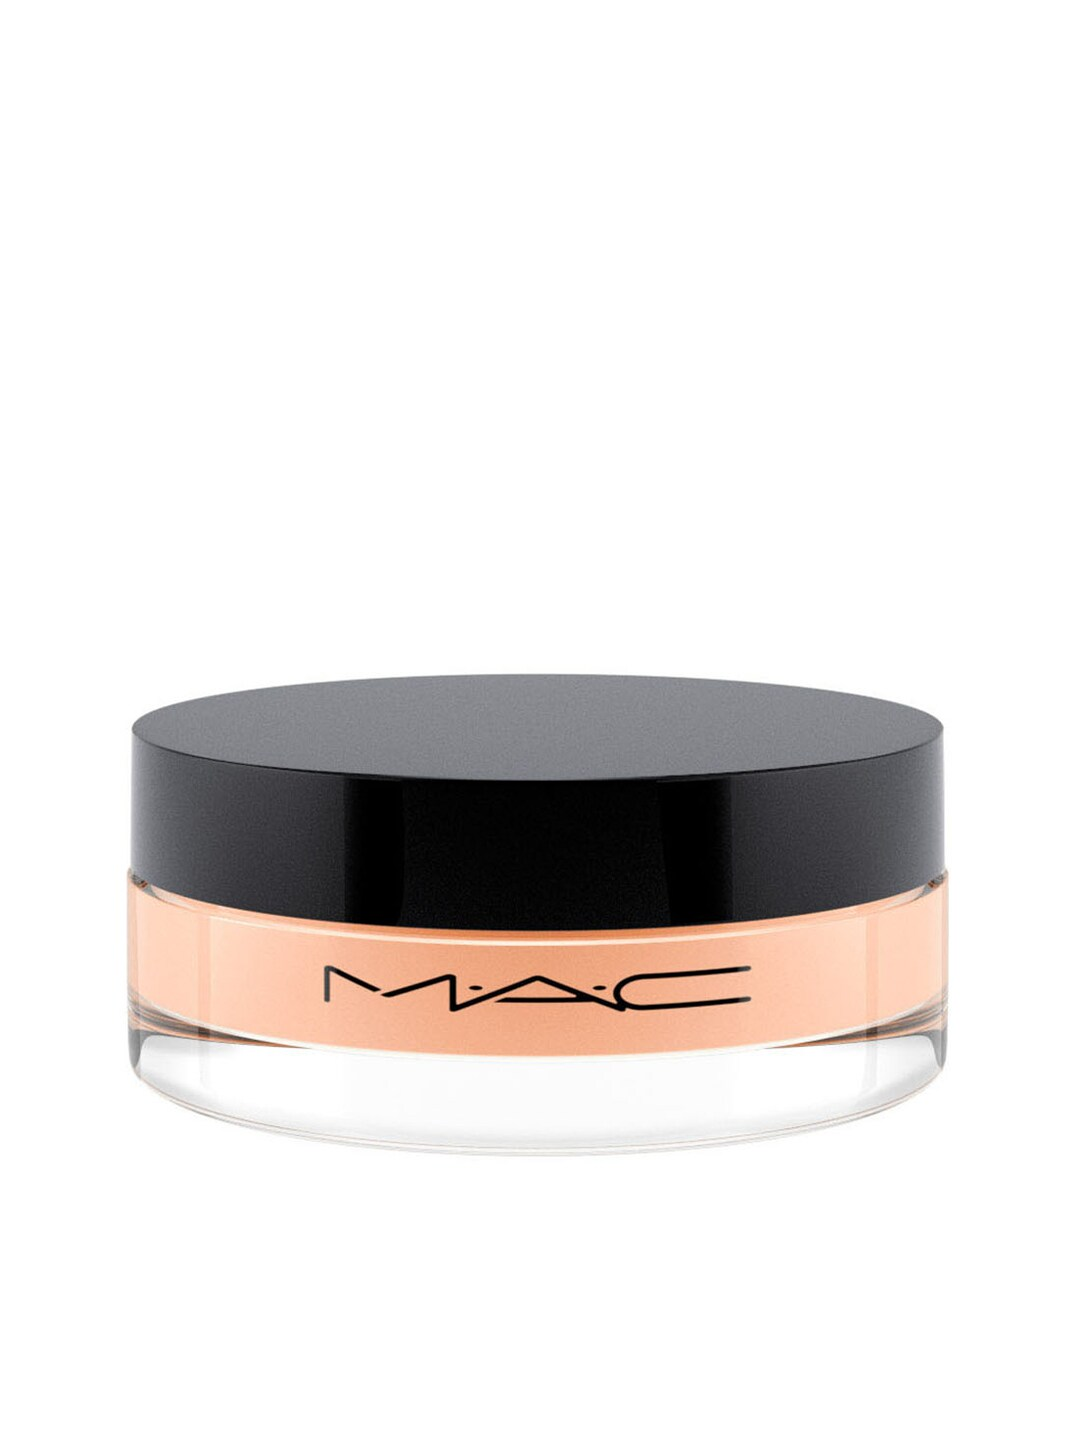 M.A.C Medium Studio Fix Perfecting Powder image